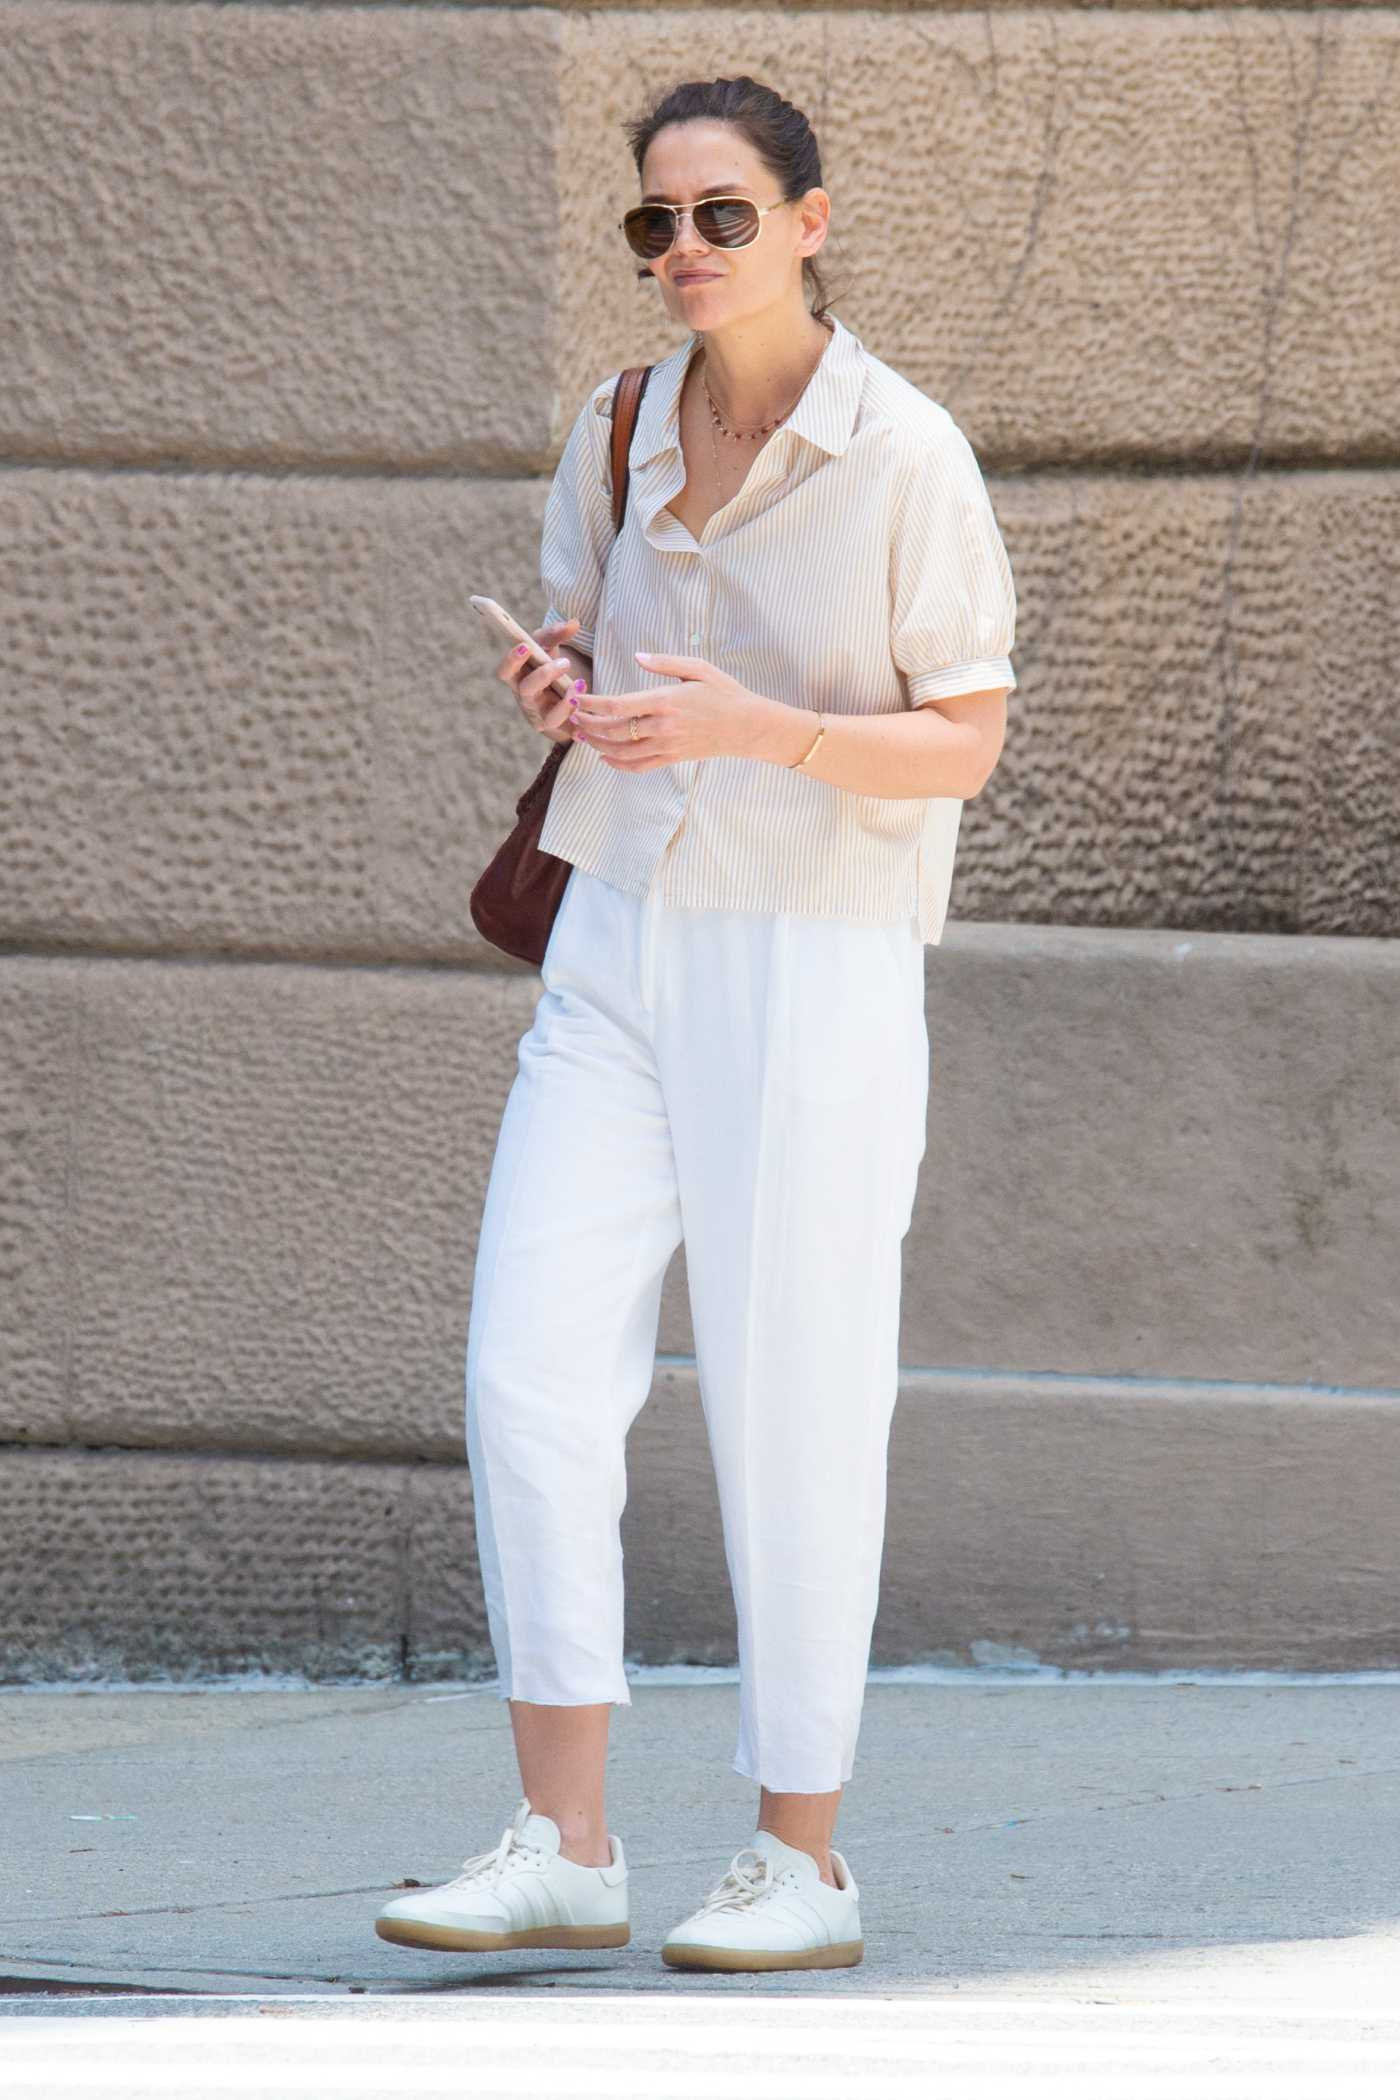 Katie Holmes in a White Pants Was Seen Out in NYC 05/15/2019